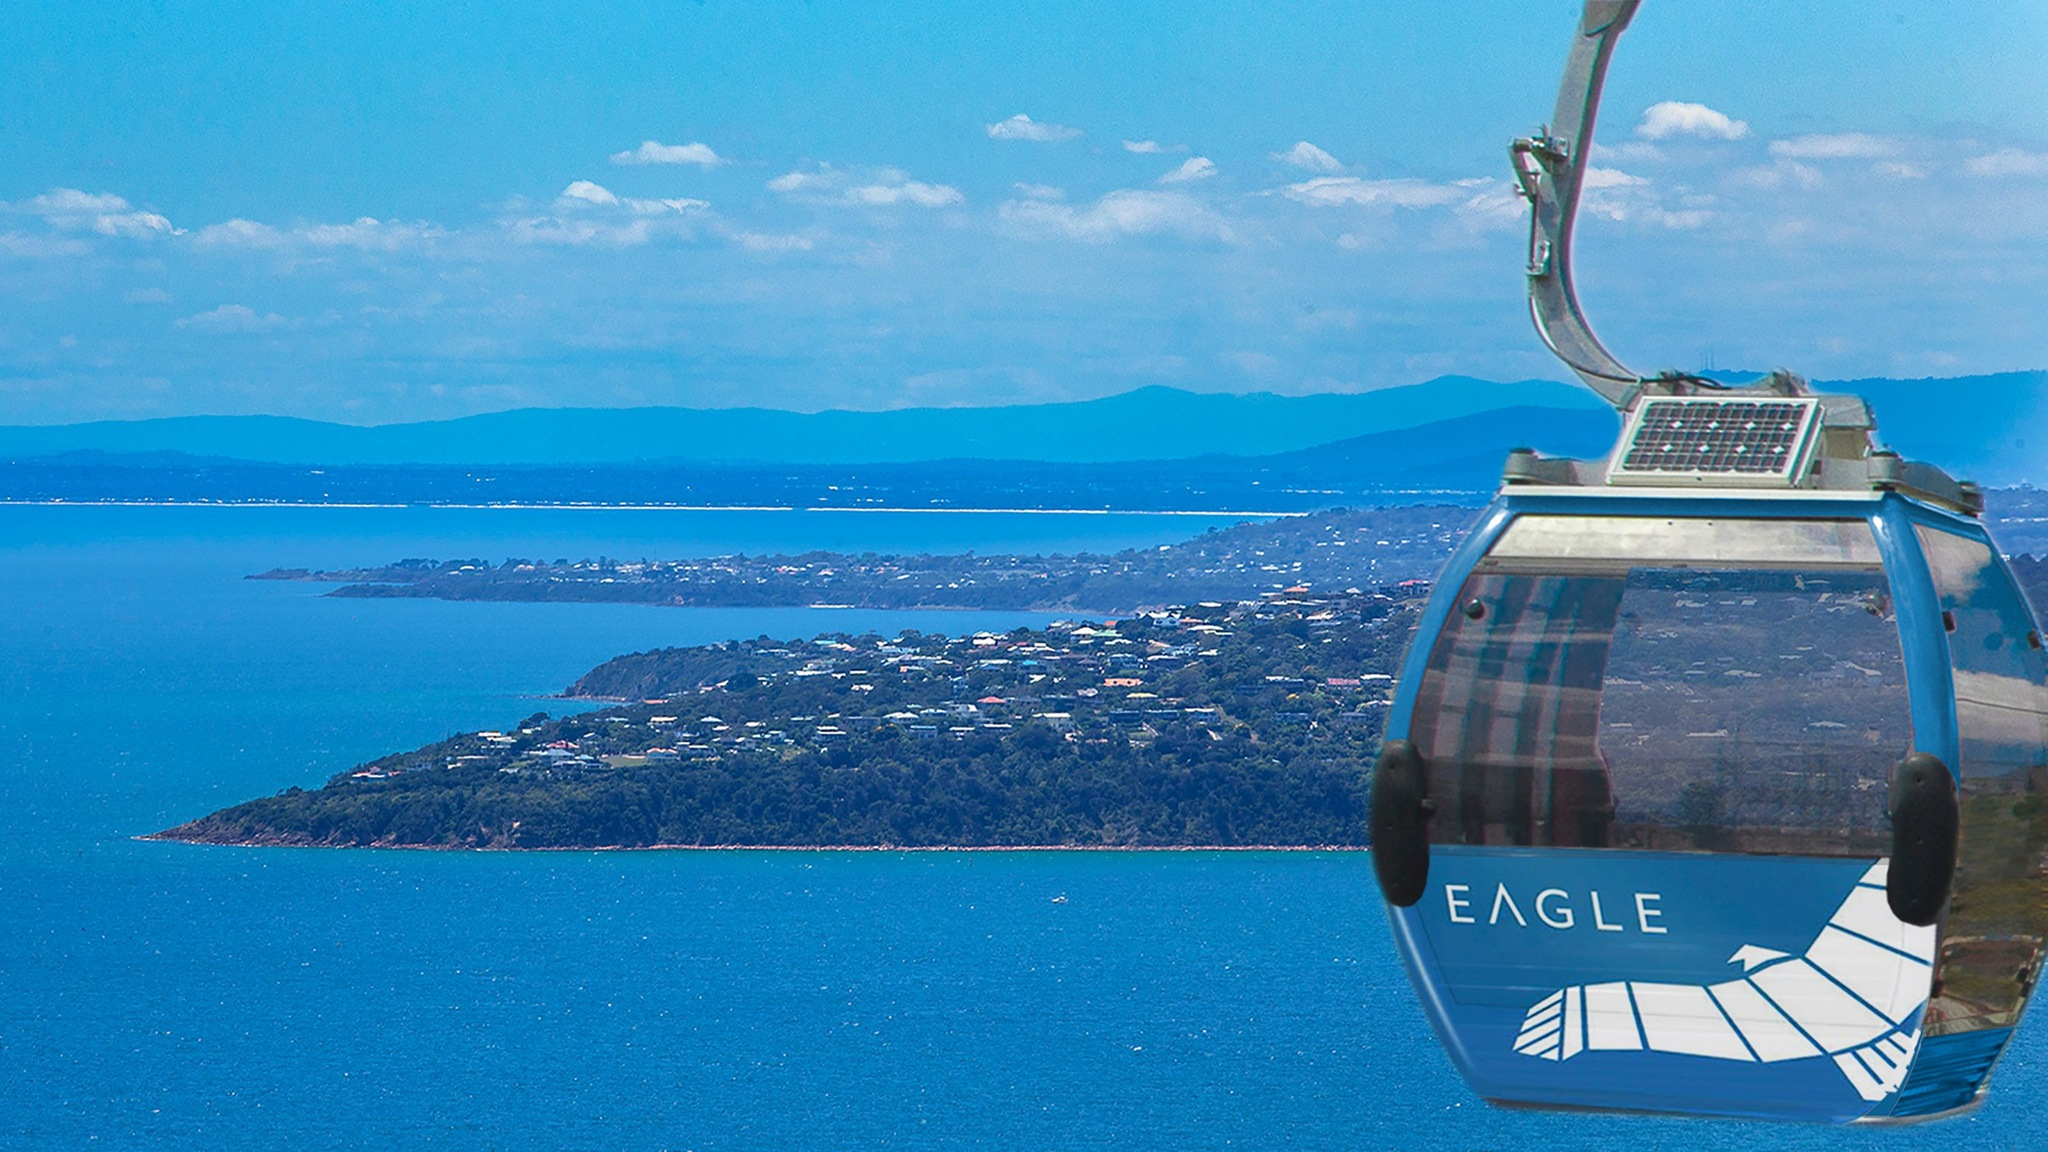 Soar through the sky on a gondola at Arthurs Seat